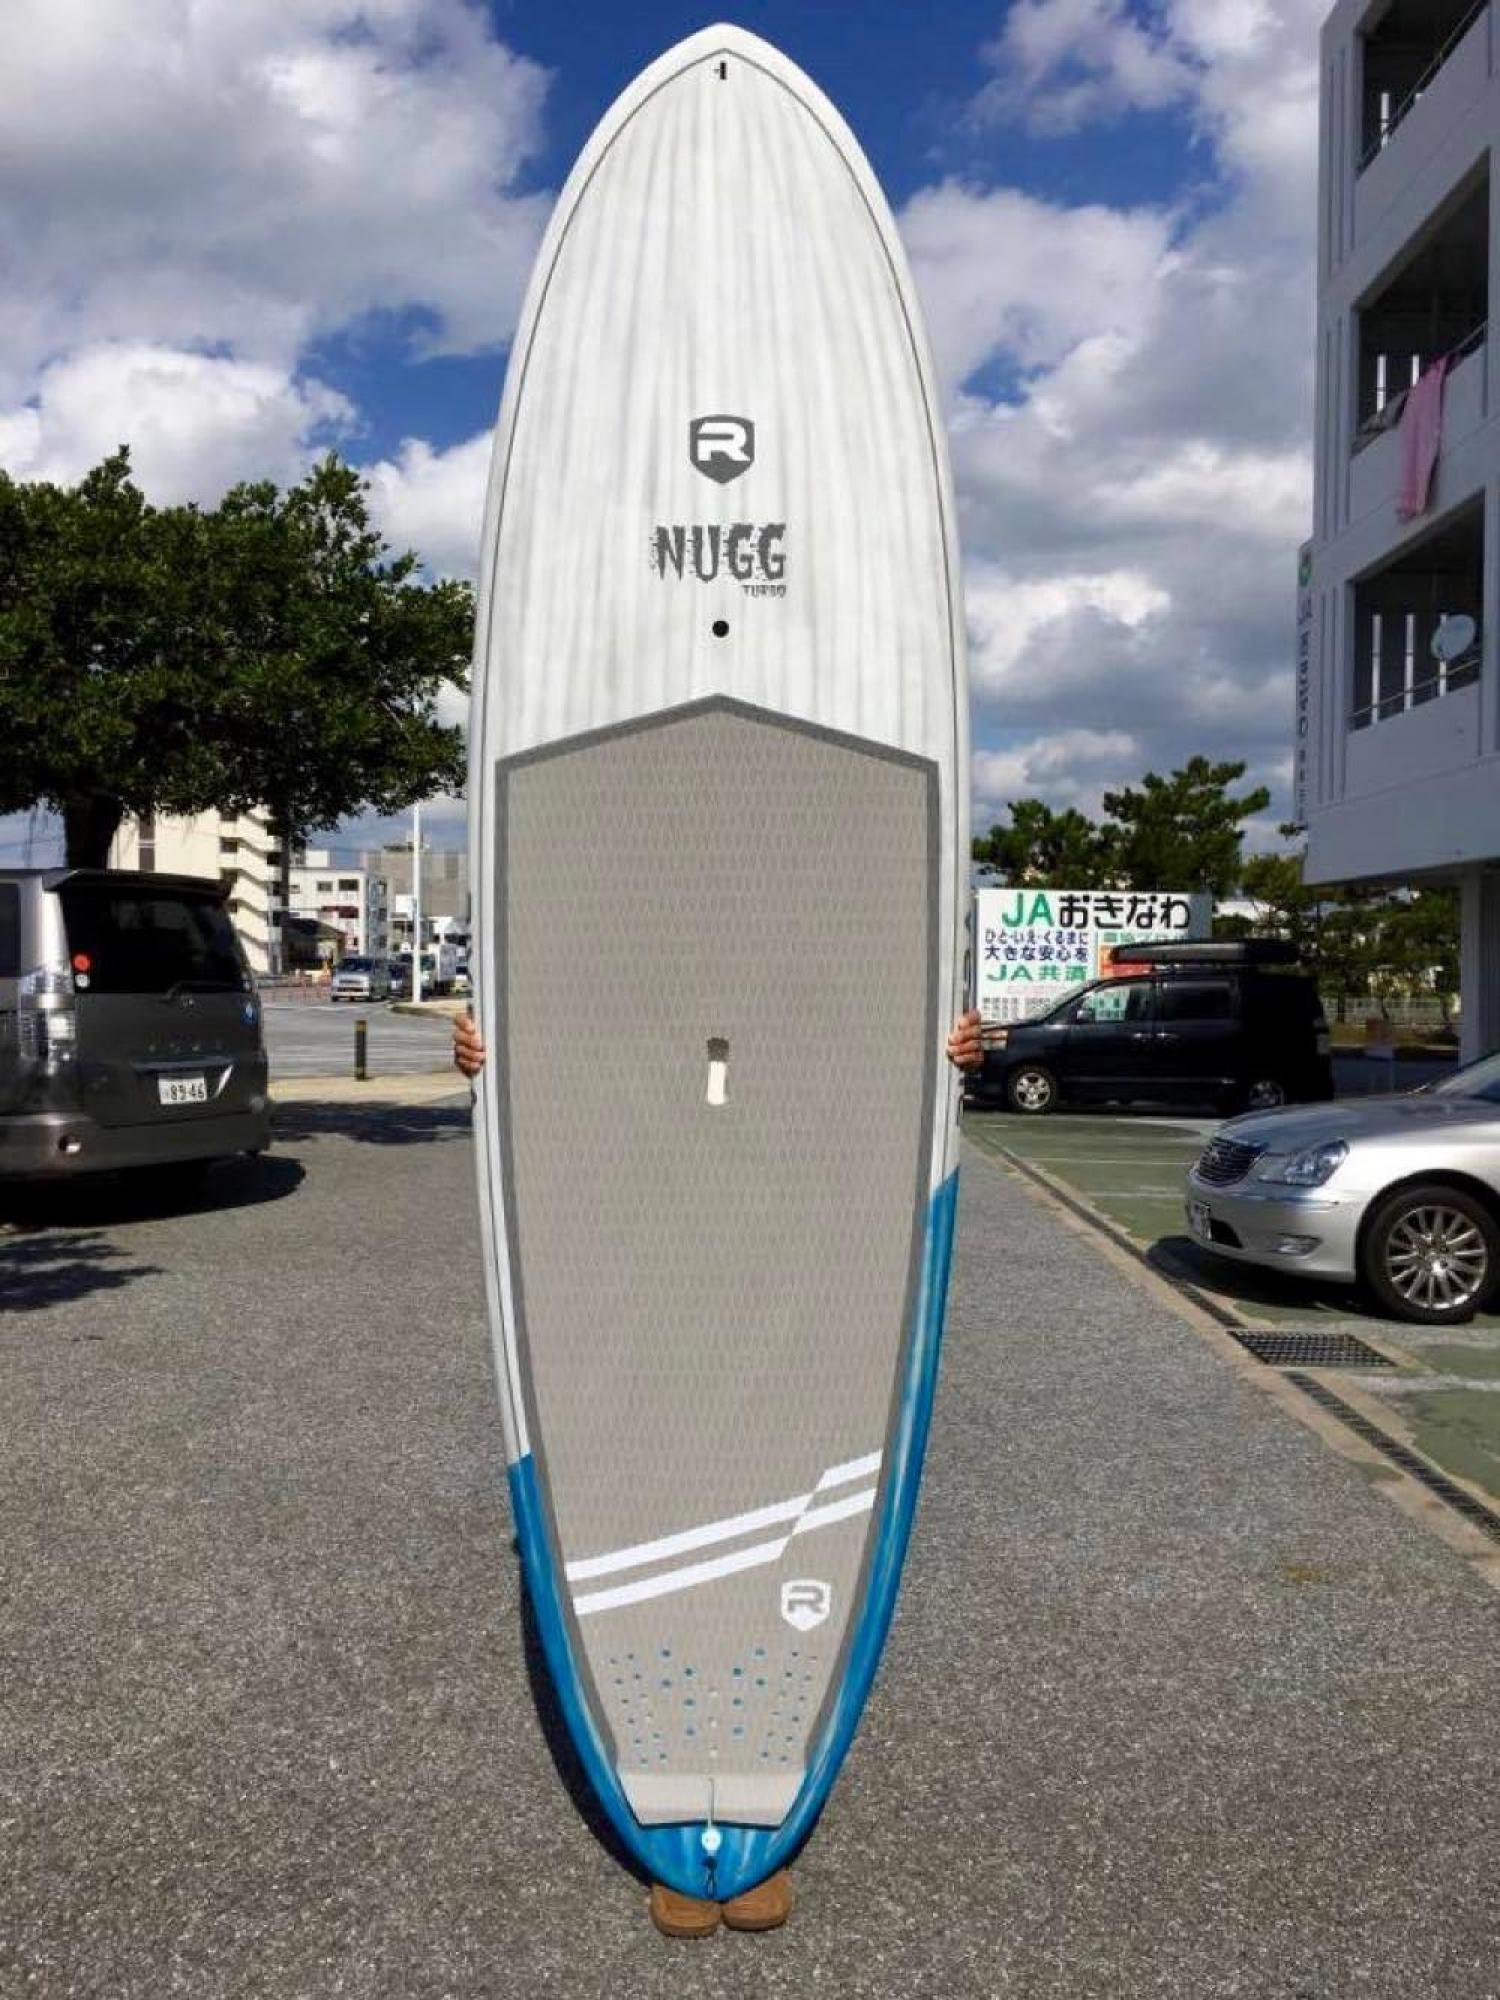 RIVIERA Paddle Surf TURBO NUGG 9.2